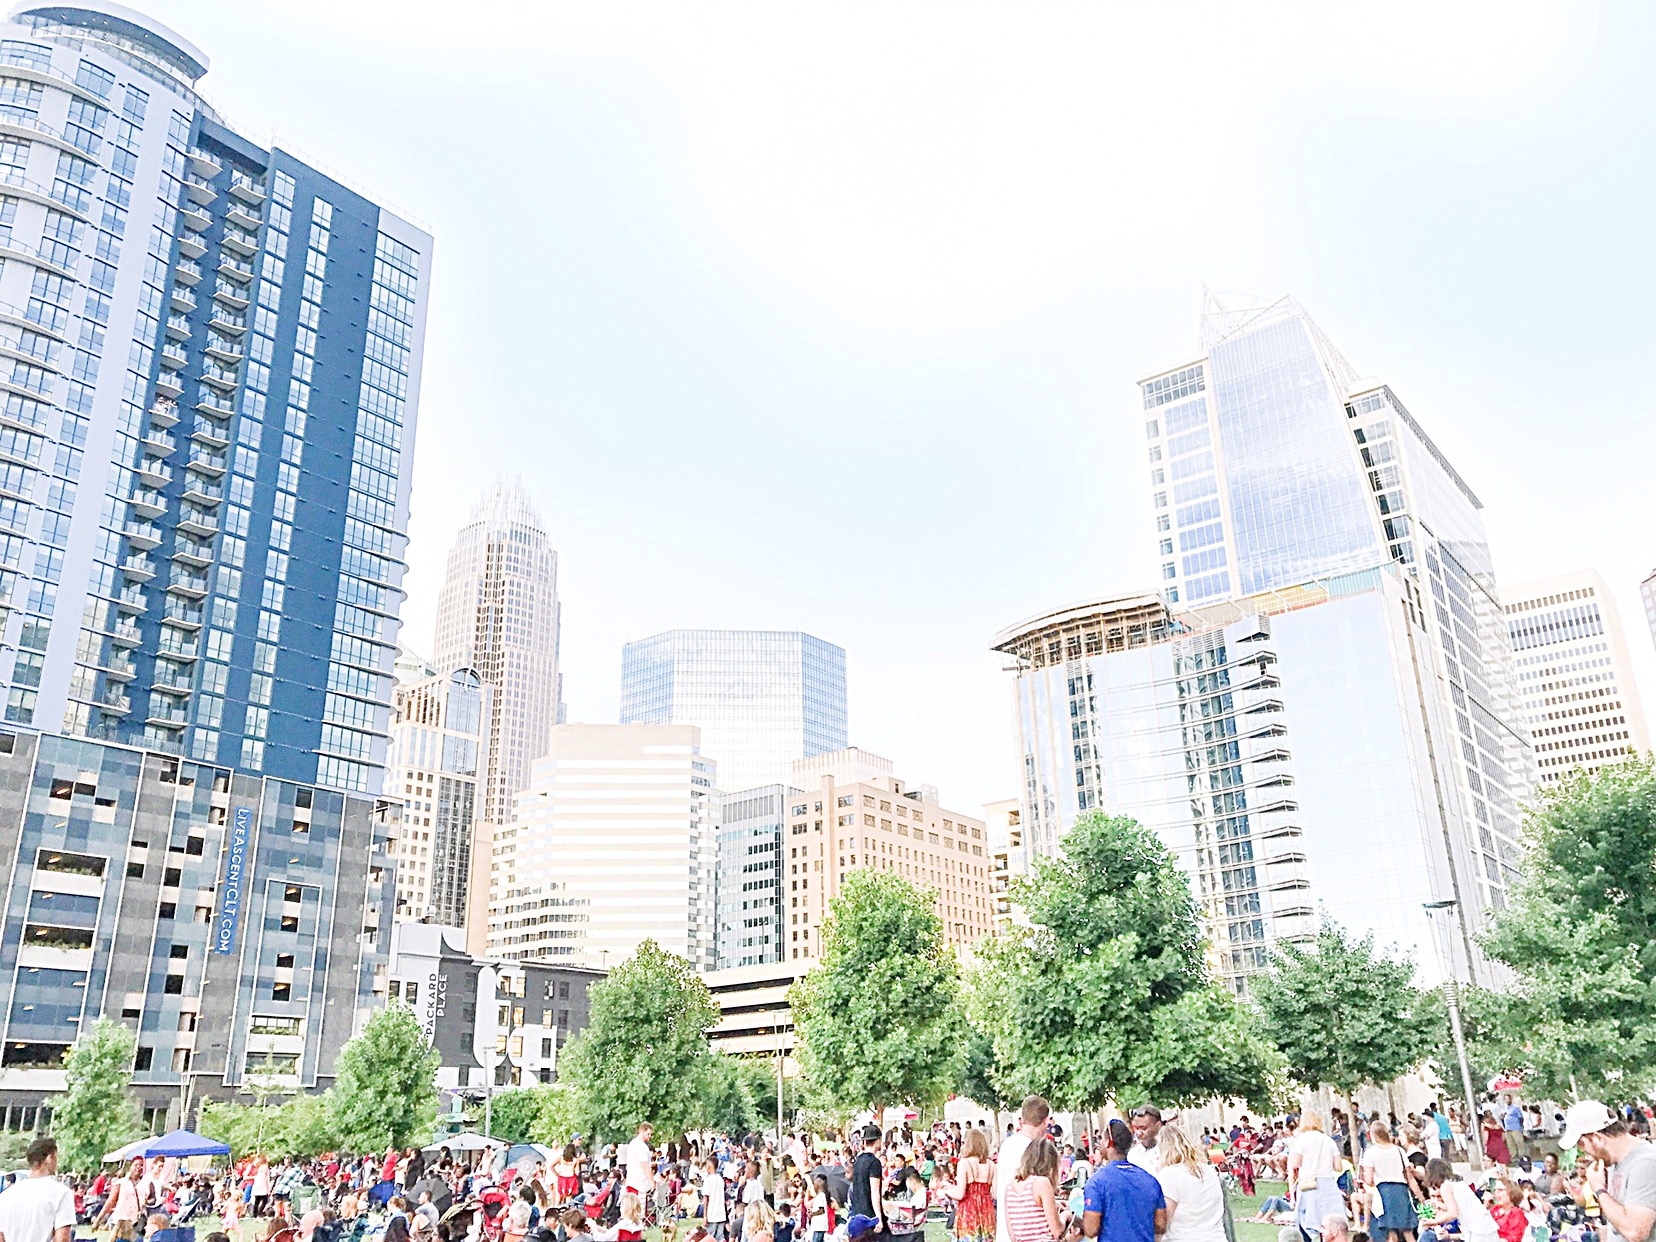 Explore uptown Charlotte, Romare Bearden Park, Free things to do with your kids this summer I'm Charlotte